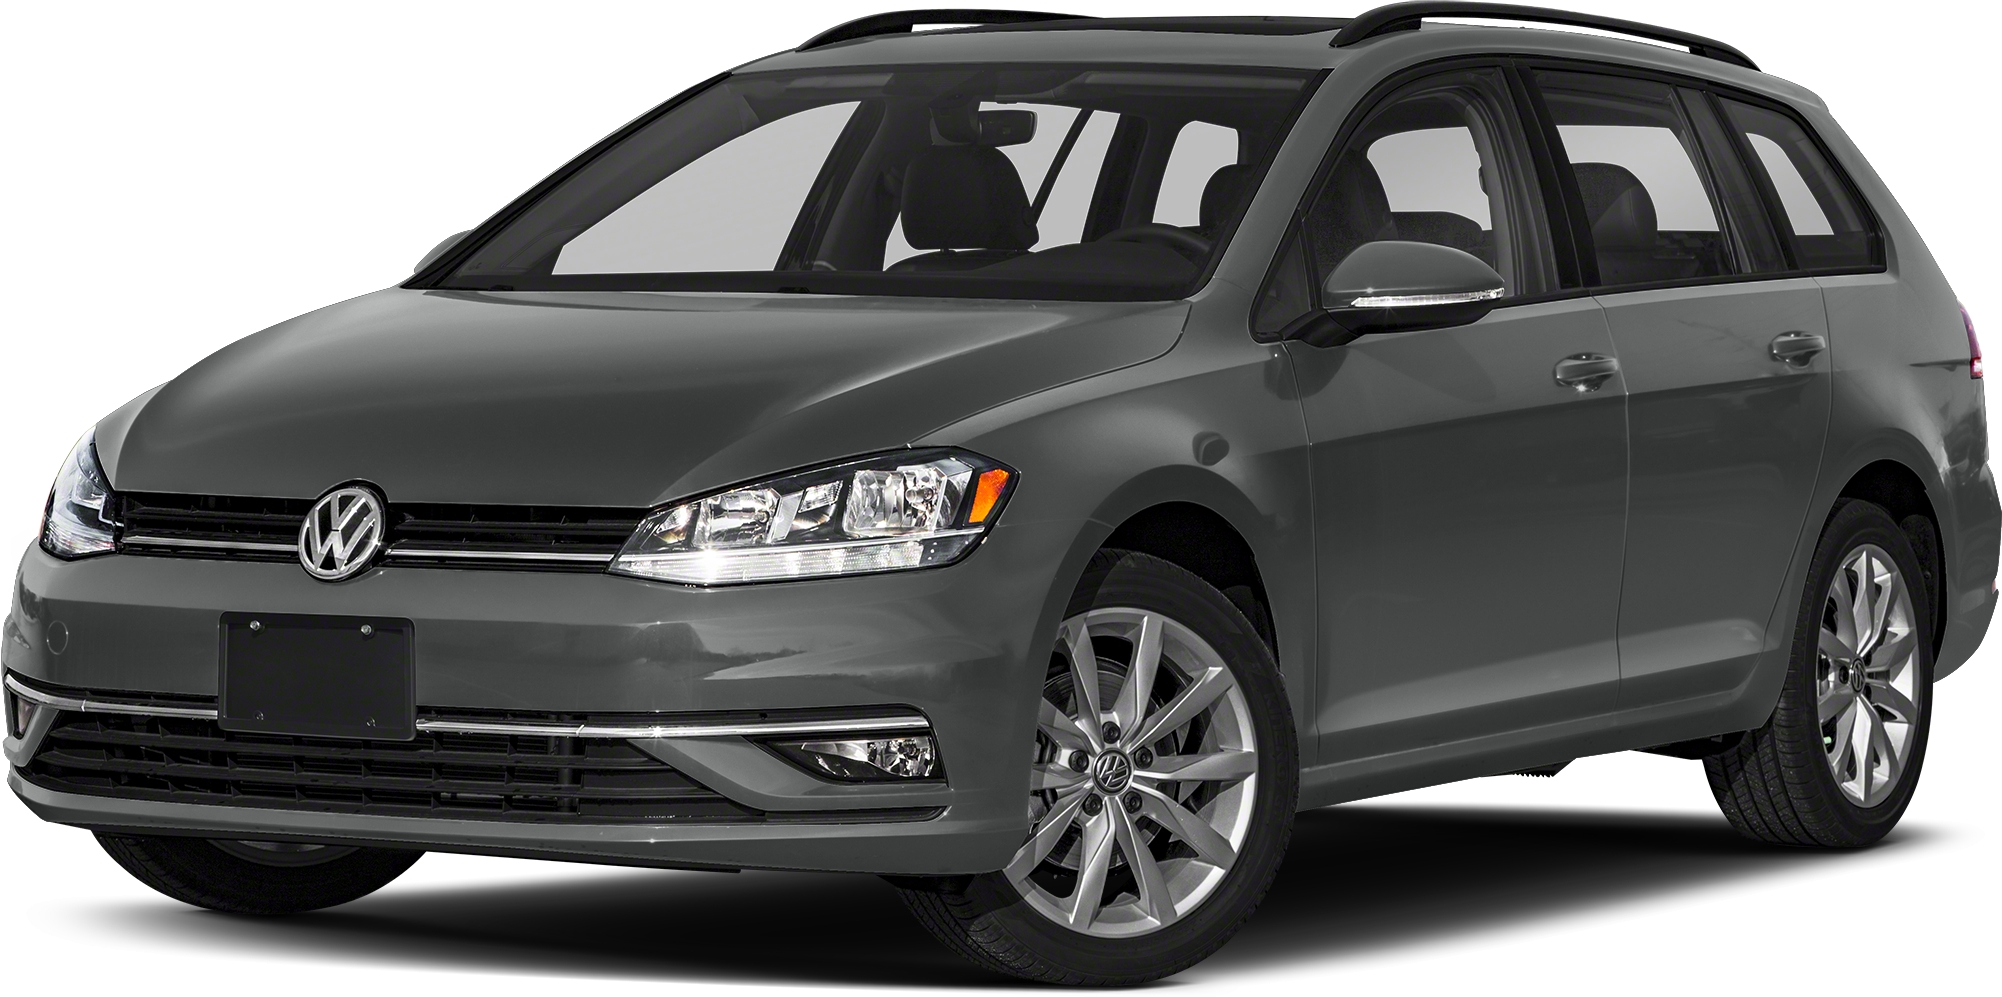 Vehicle details - 2018 Volkswagen Golf SportWagen at Lash Volkswagen of White Plains White ...